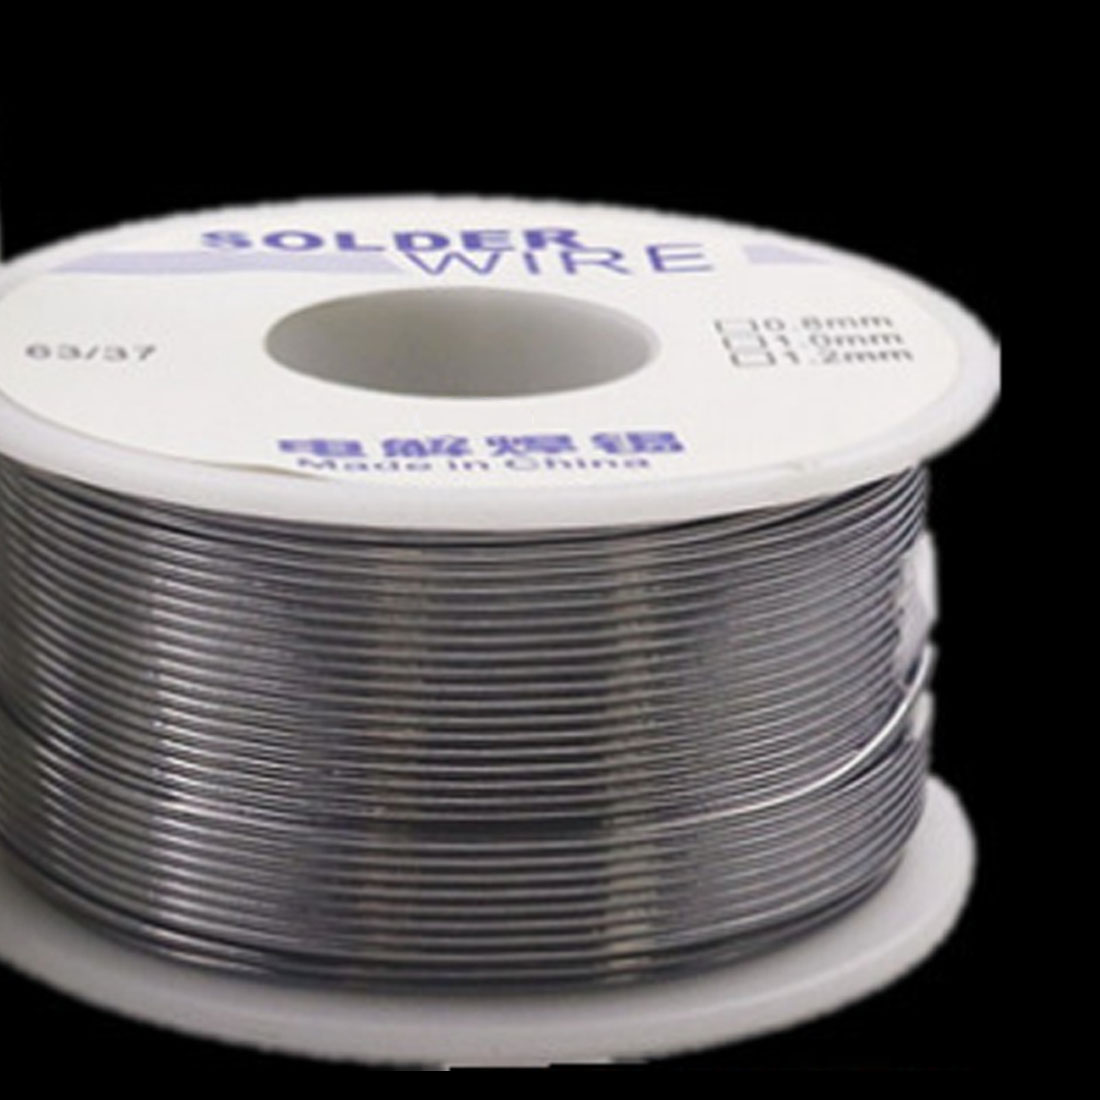 Industrial Solder Wire 63/37 50g 1.0mm/0.8mm 2.0-2.3 % Flux Rosin Core Weldring Tin Lead Iron Wire Reel Soldering Tools